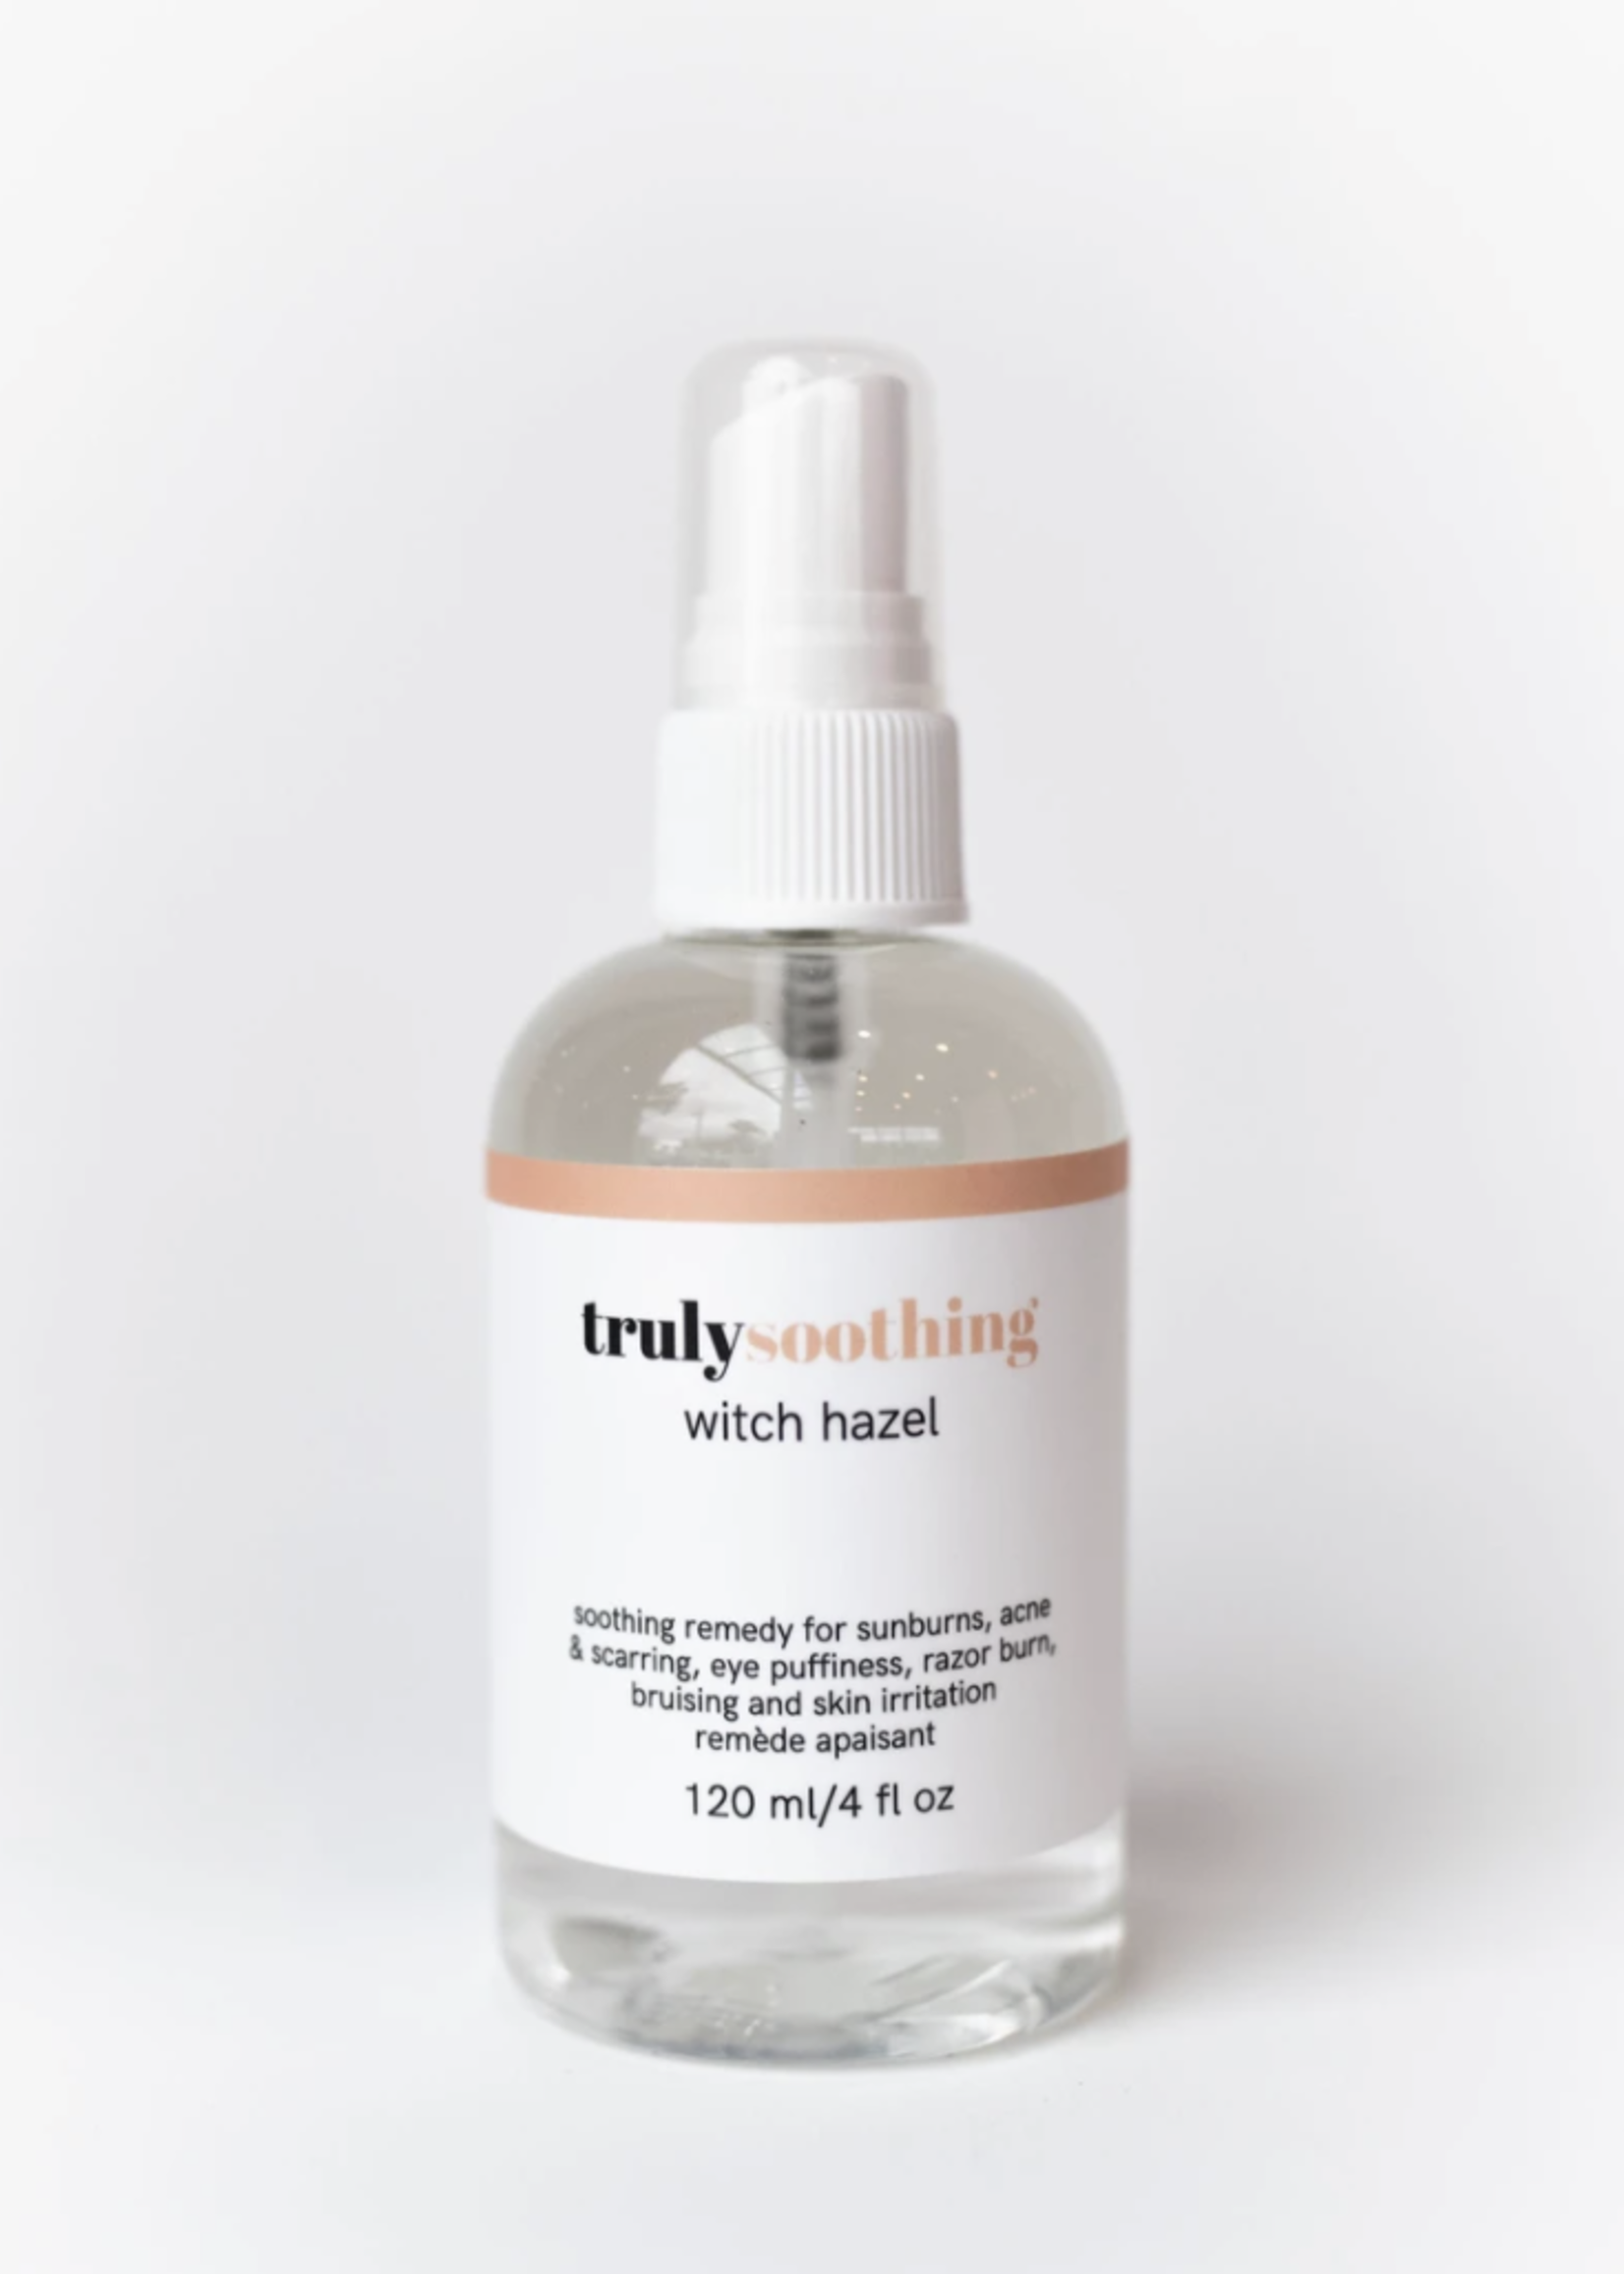 Truly Lifestyle Brand Truly Soothing - Witch Hazel